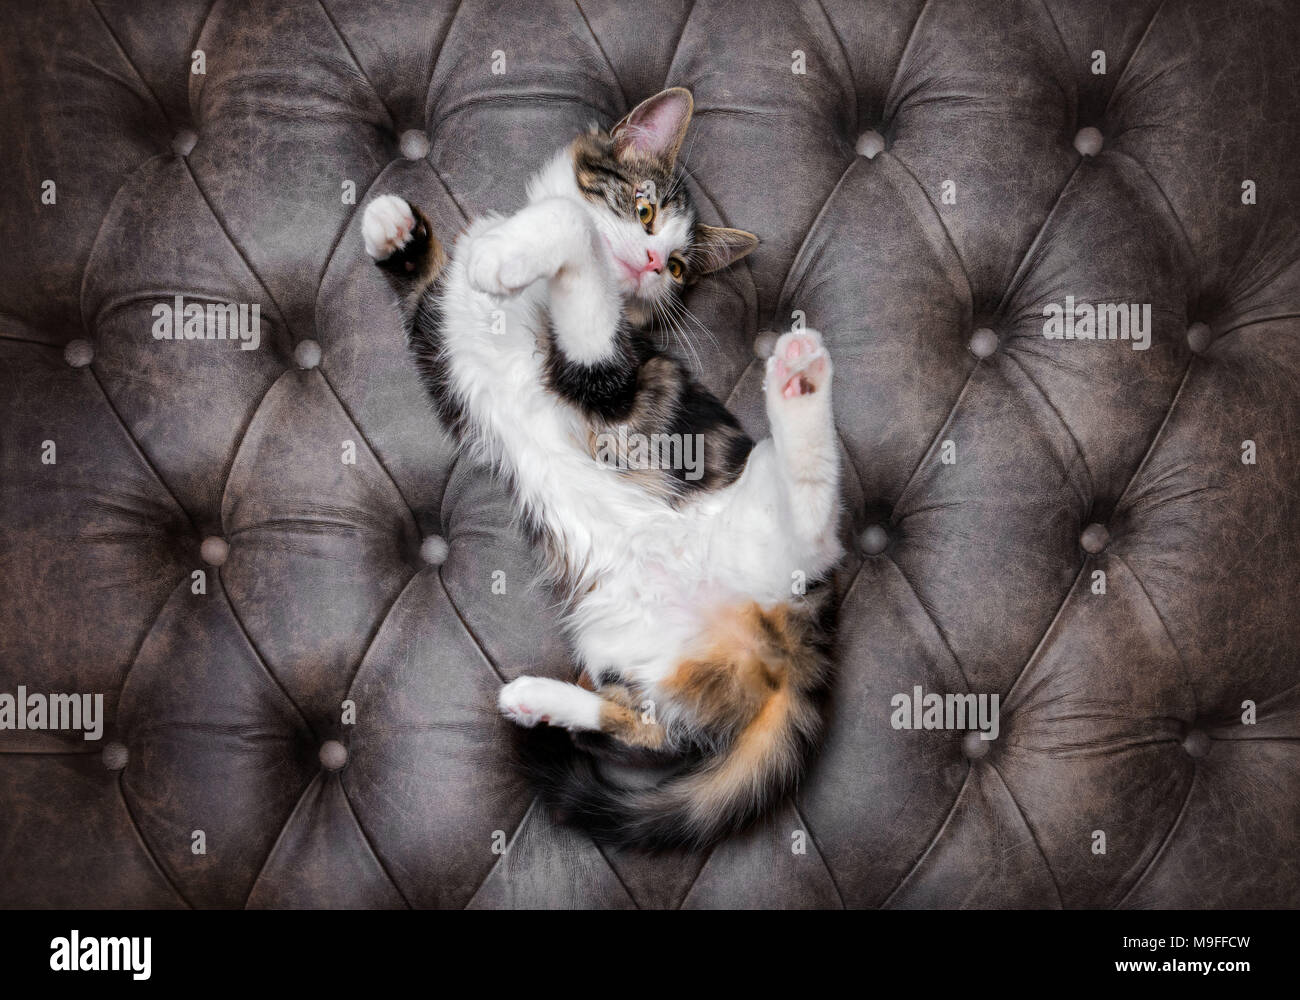 Looking down at playful fluffy kitten on a luxurious leather buttoned ottoman - Stock Image